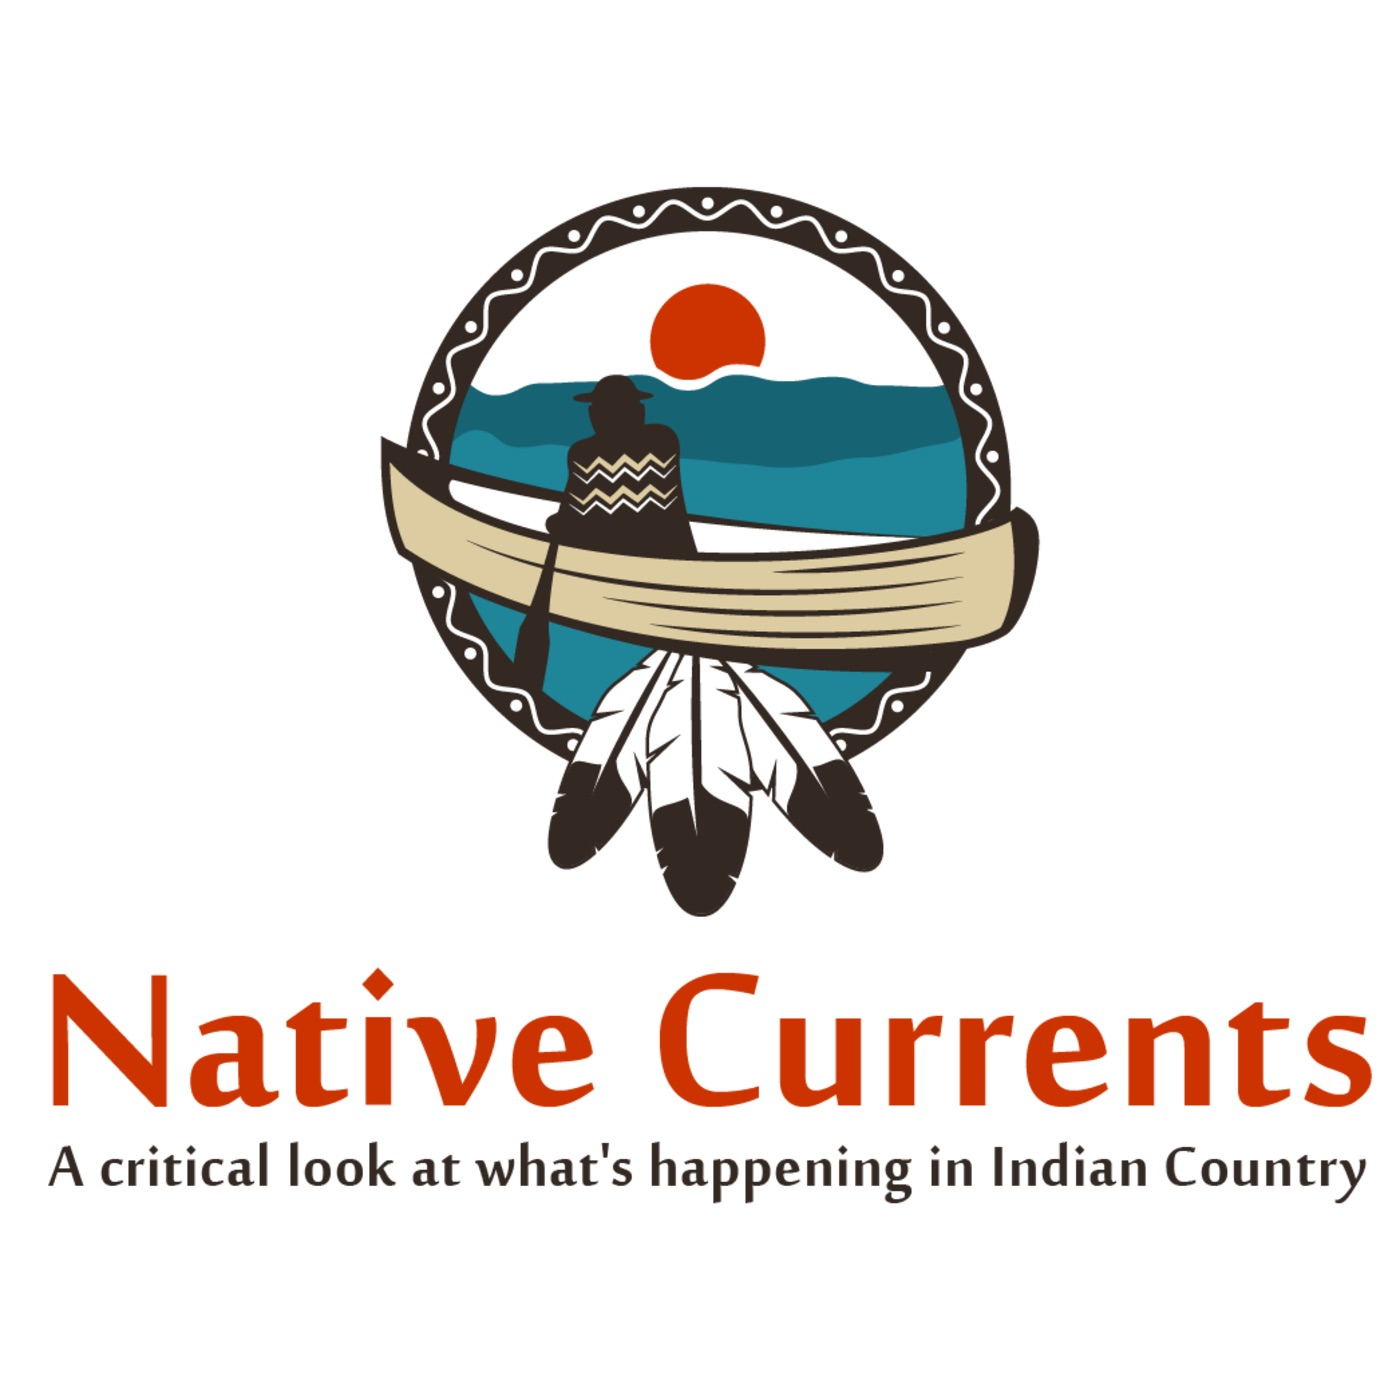 Native Currents